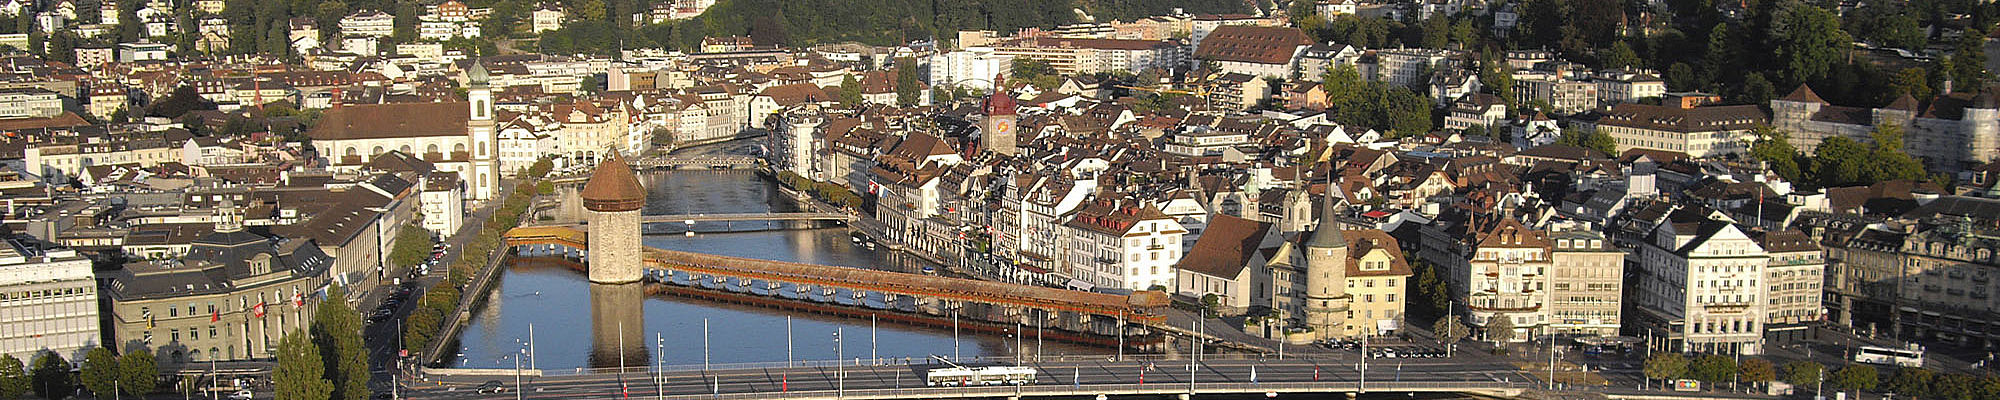 Study hotelmanagement in Lucerne Switzerland